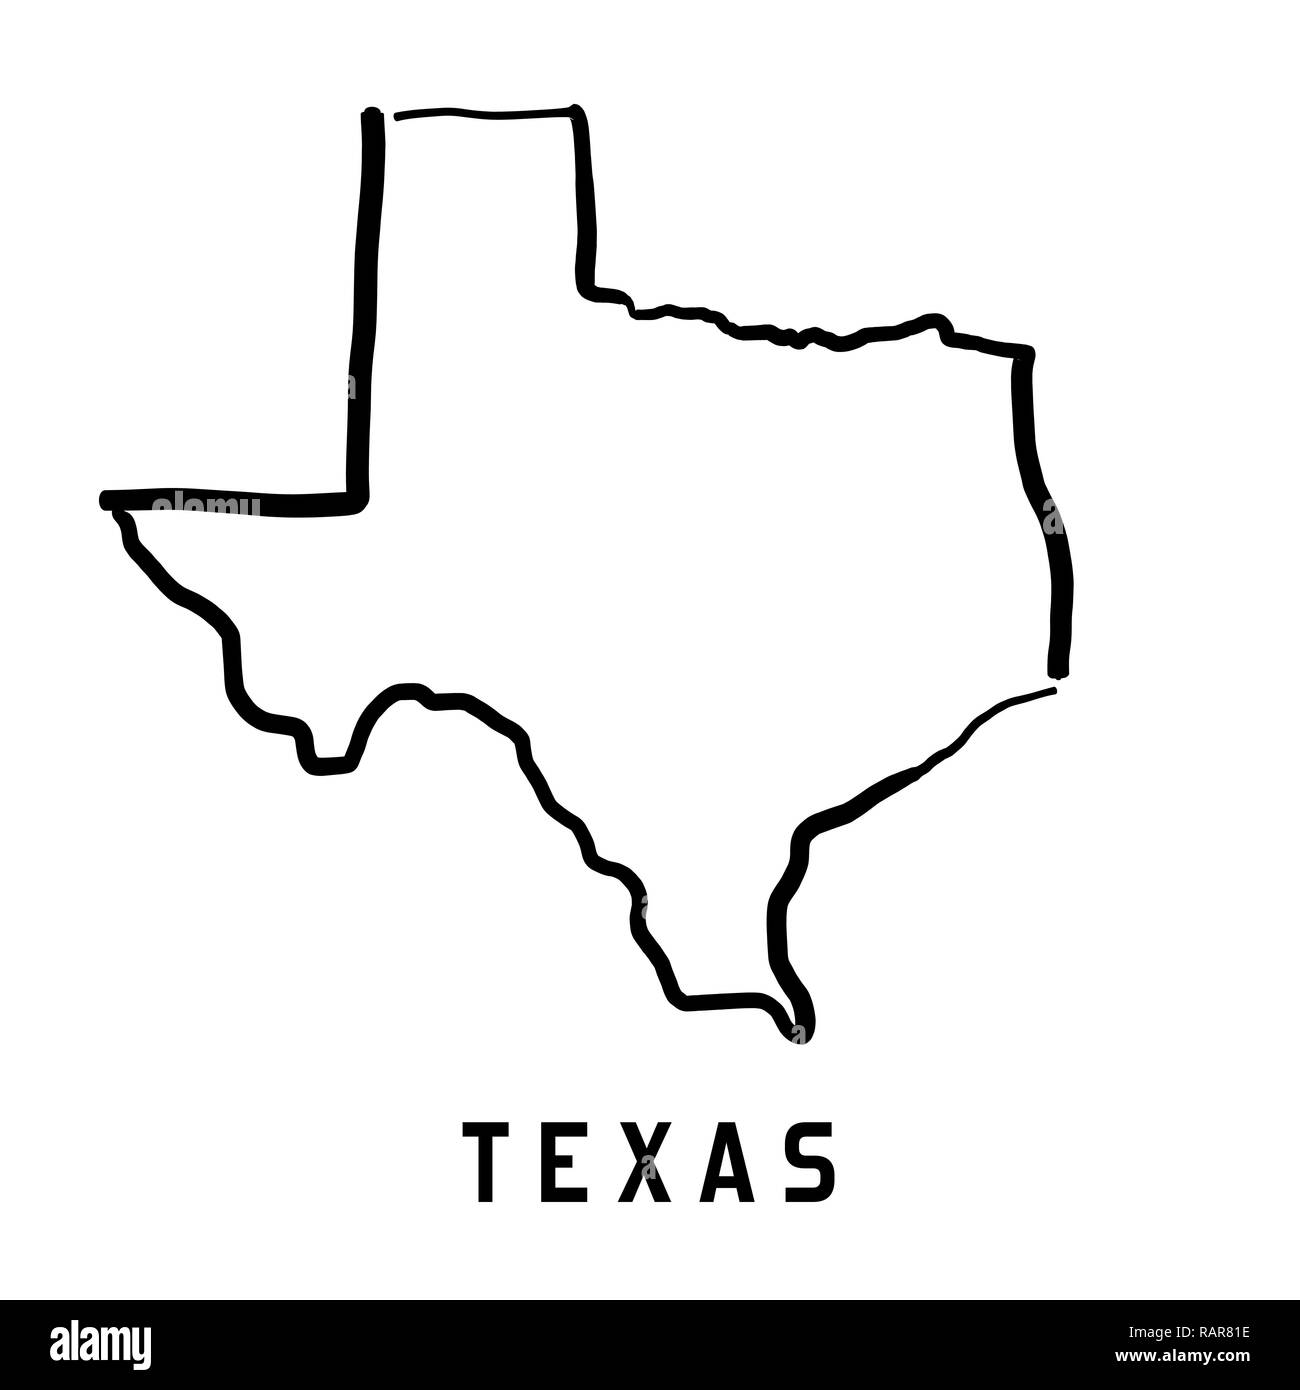 Outline Of Texas Map.Texas Map Black And White Stock Photos Images Alamy